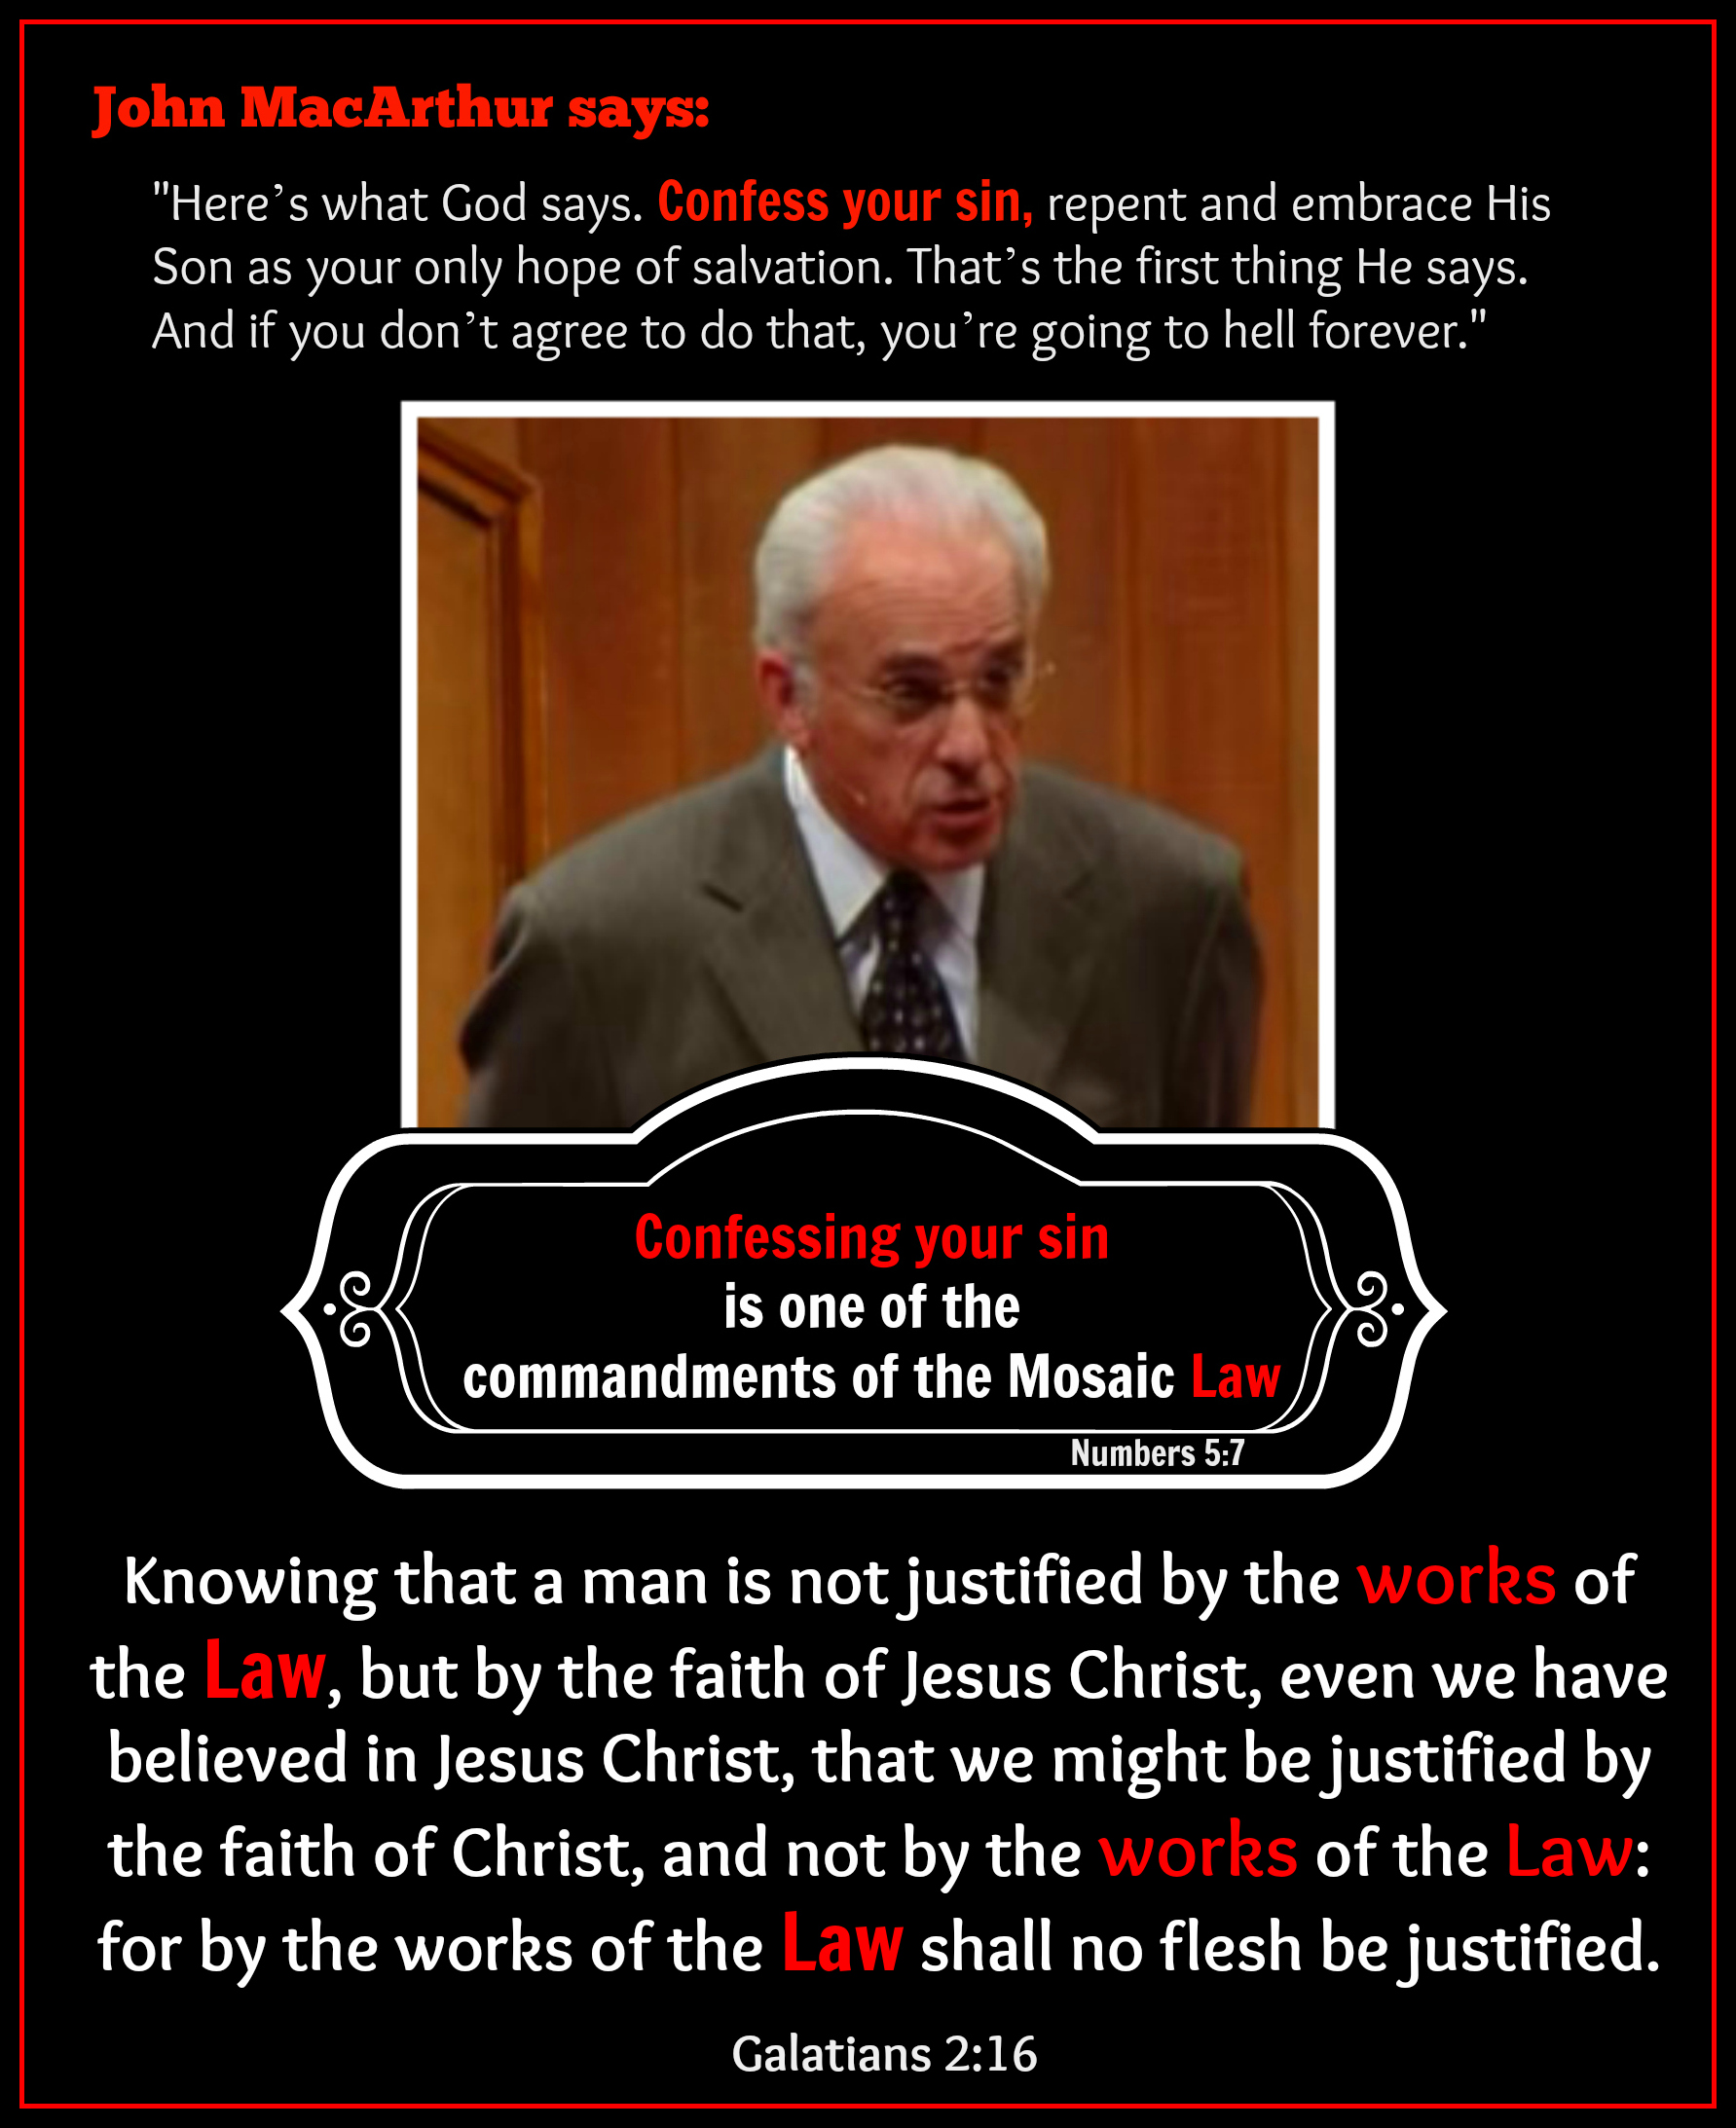 John Macarthur Quotes The Gospel According To John Macarthur  Redeeming Moments